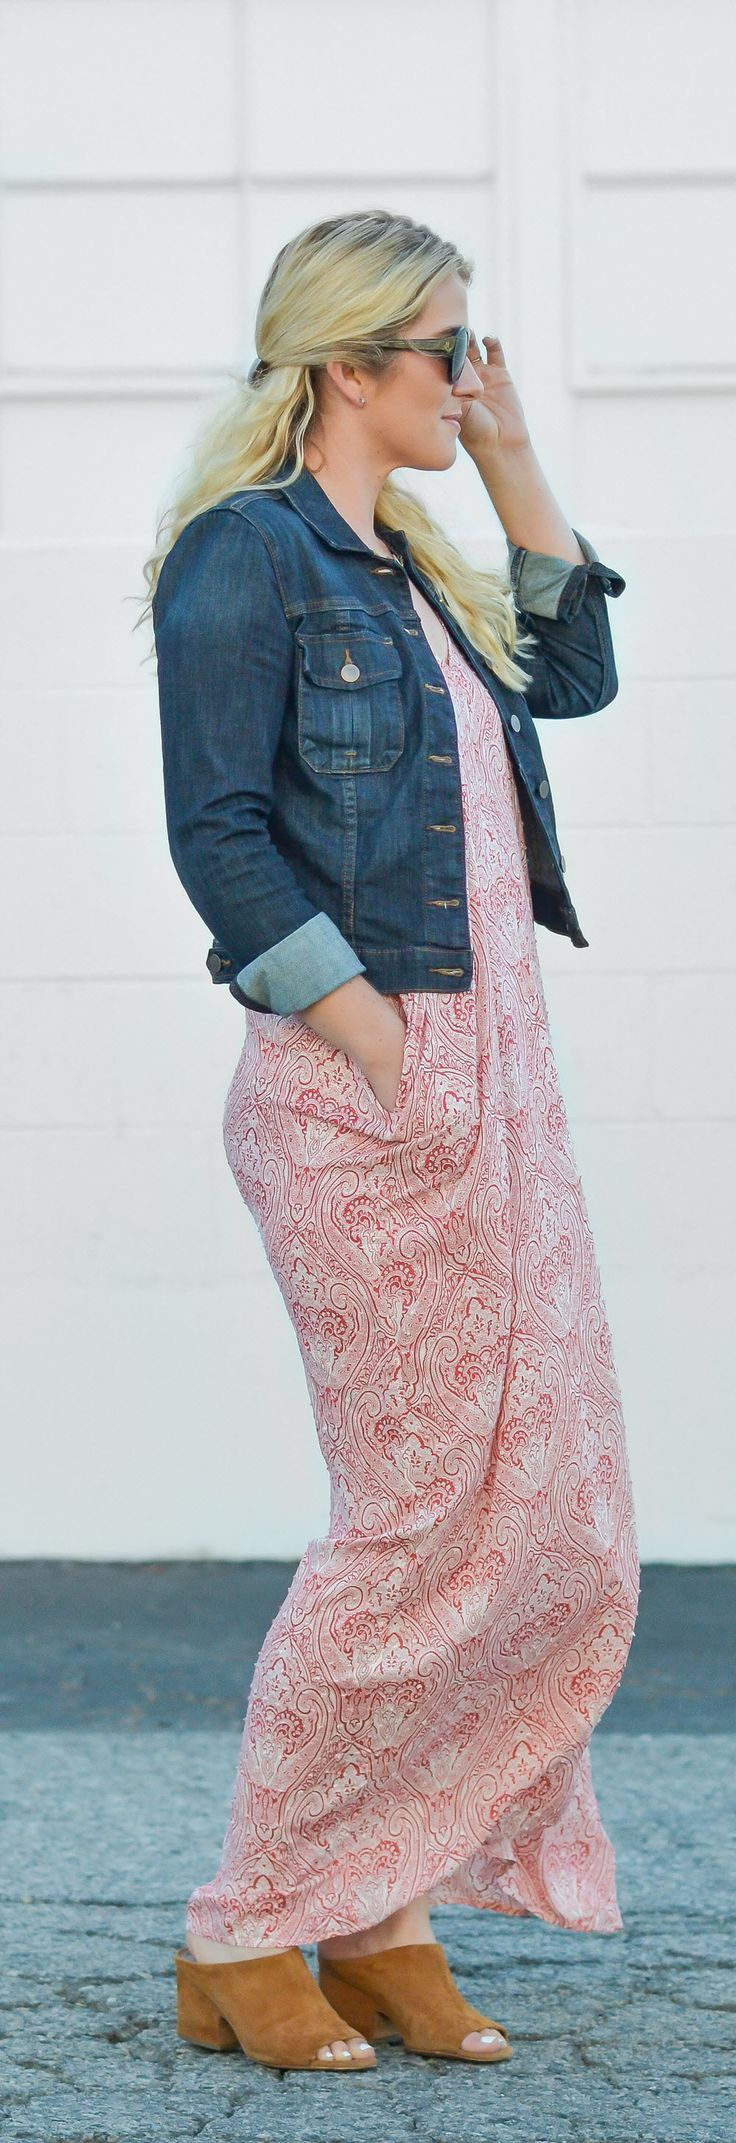 Ease into summer with this casual maxi dress outfit easily dressed up on down with flats, wedges, or mules and topped with your favorite denim jacket!